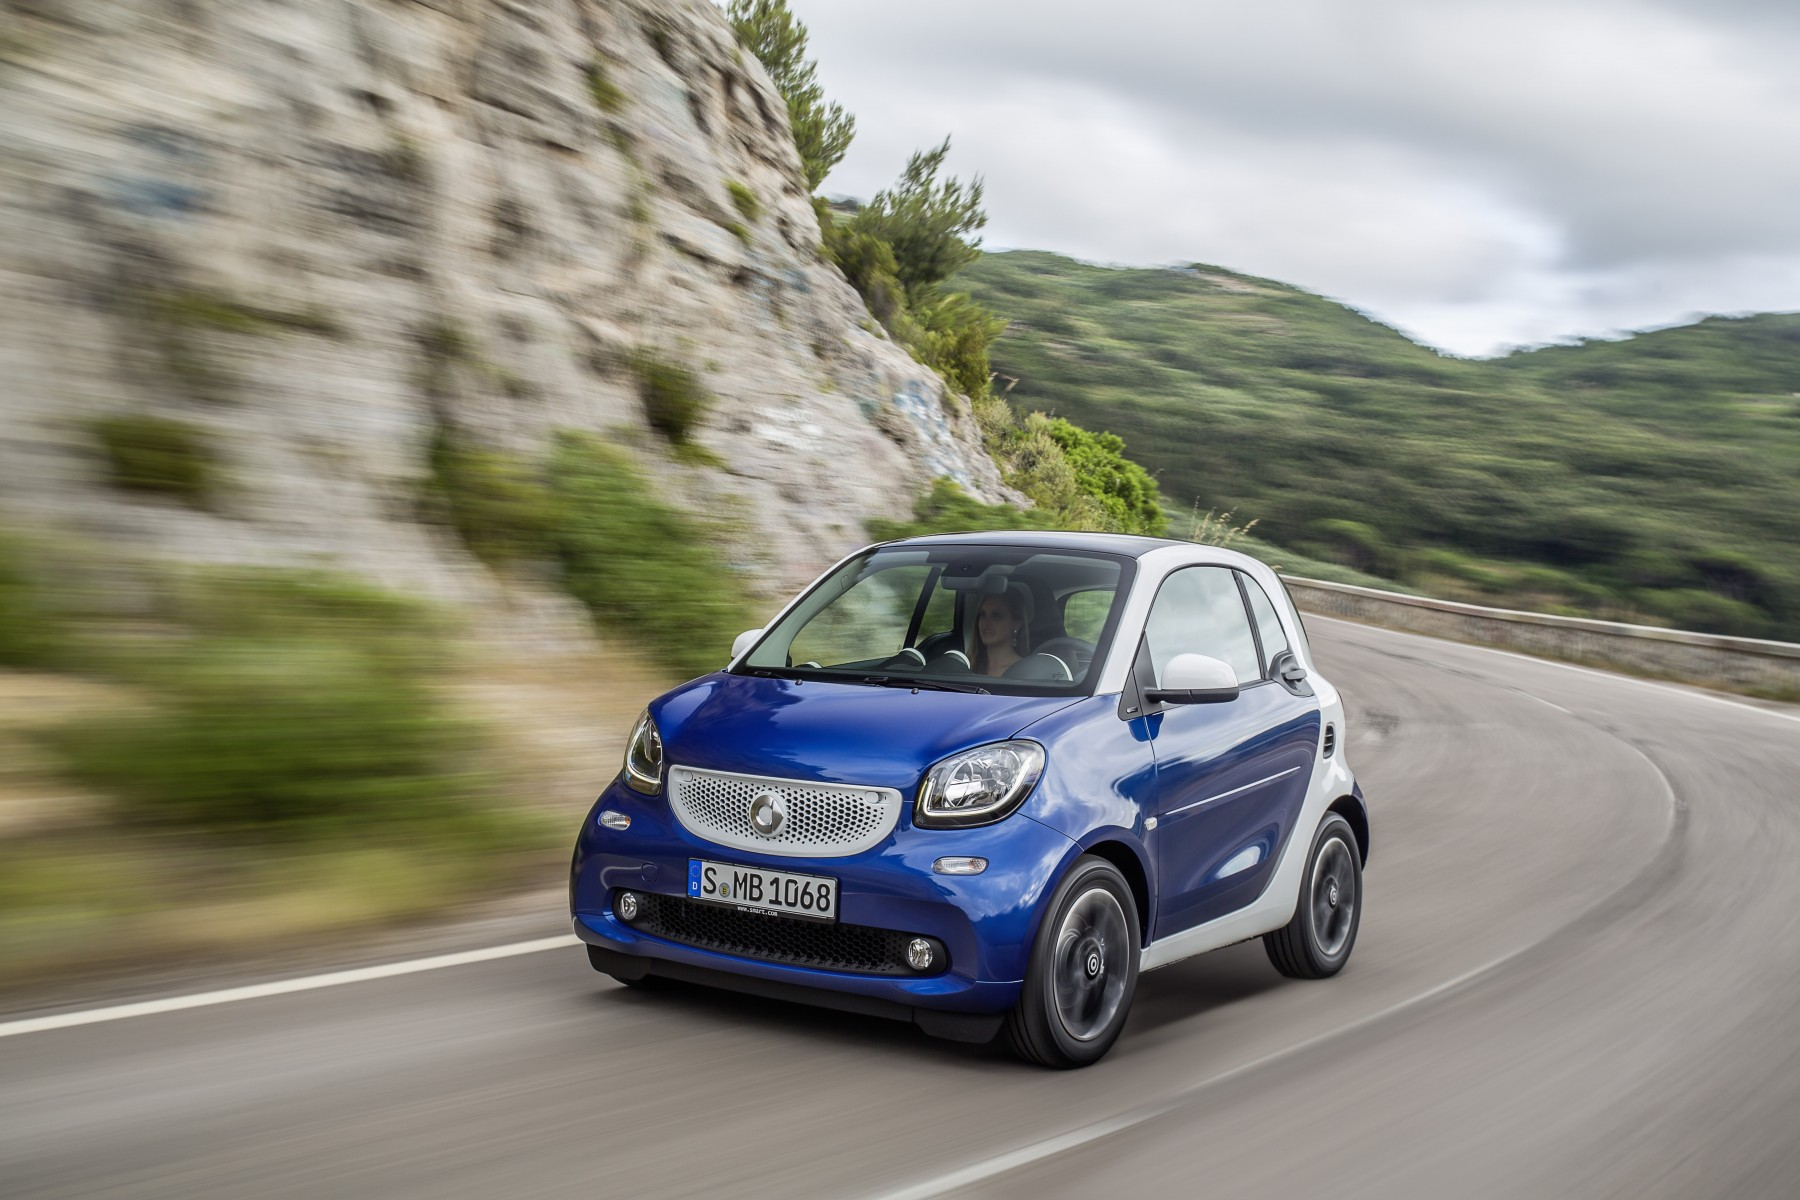 The new smart fortwo 2014: Bodypanels in midnight blue (metallic), tridion safety cell in white